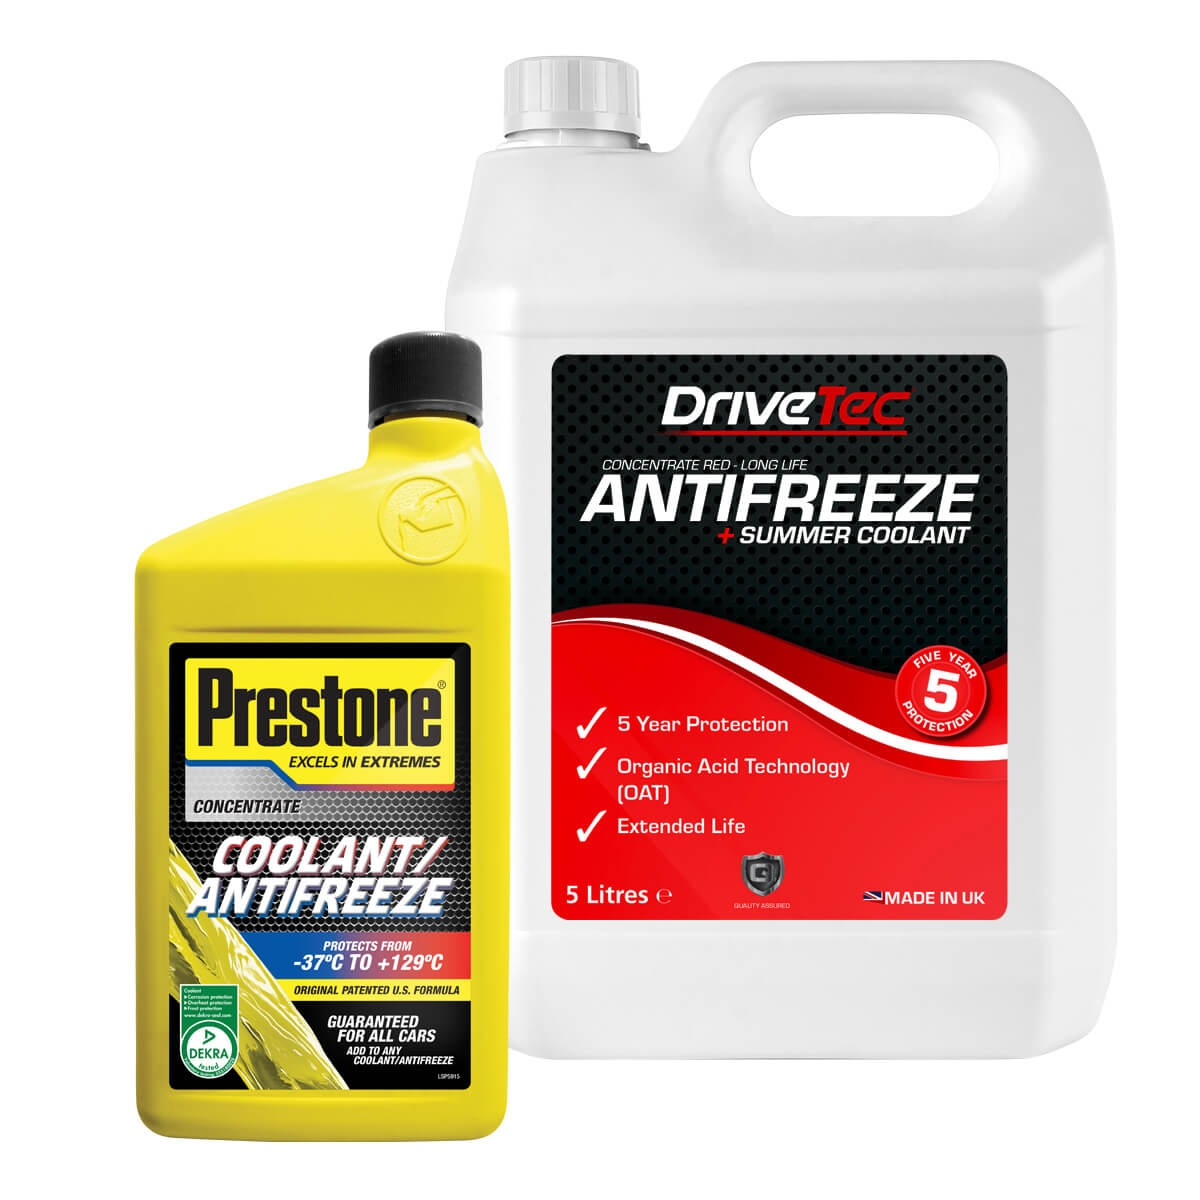 CHRYSLER VOYAGER IV Antifreeze & Coolant